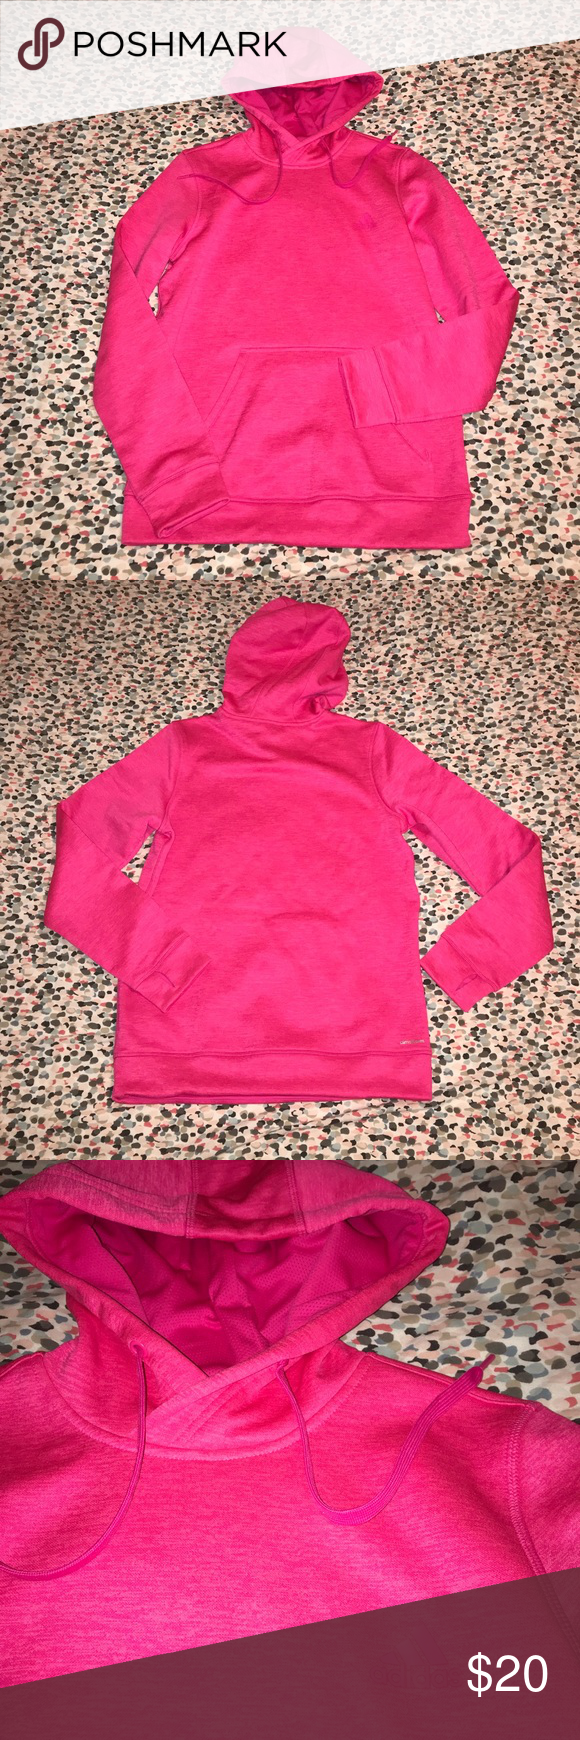 NWOT Adidas Climawarm Pink Hooded Sweatshirt Small BRAND NEW